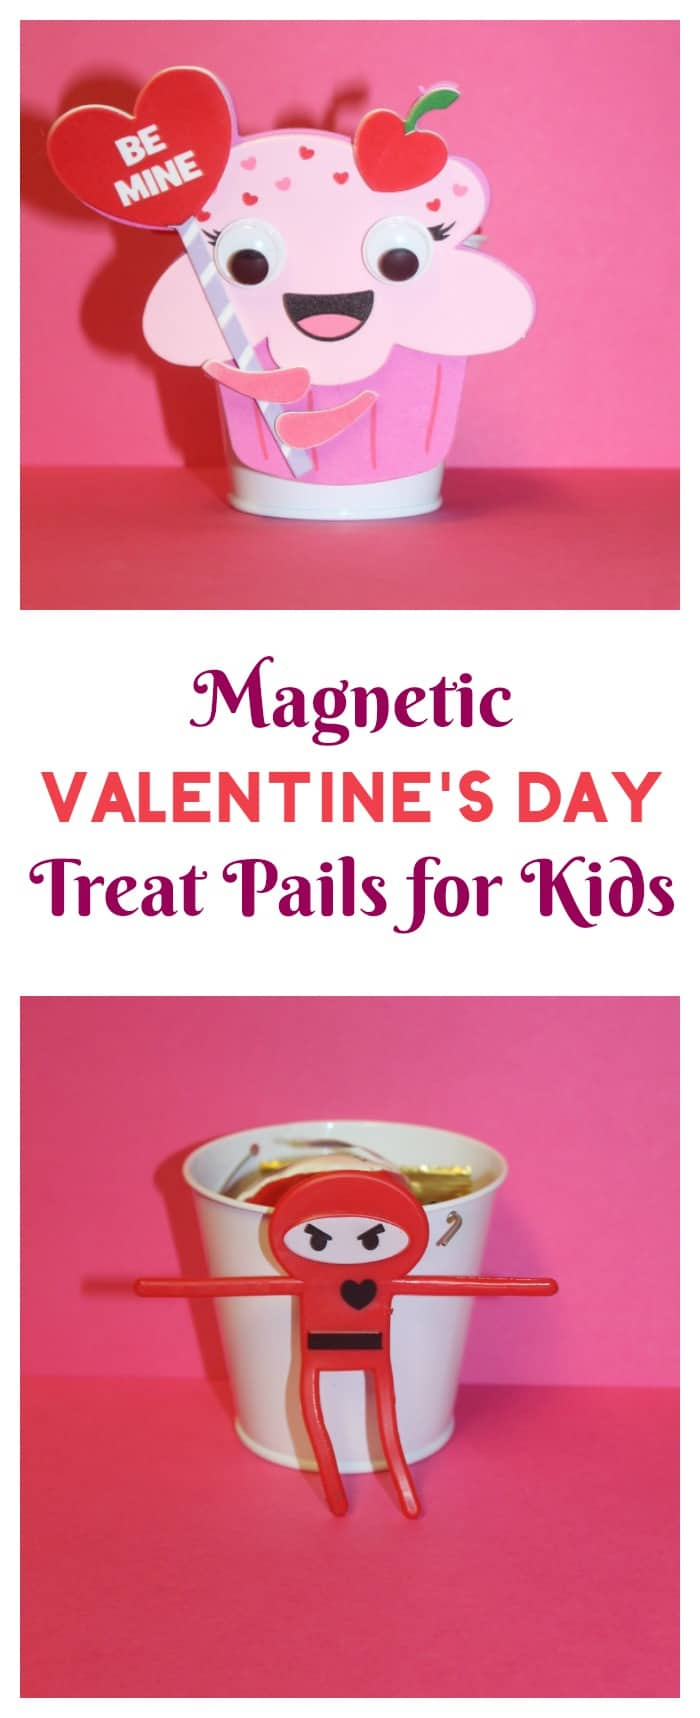 Make a DIY magnetic Valentine\'s Day treat pail for kids in just minutes. Makes for great party favors too!